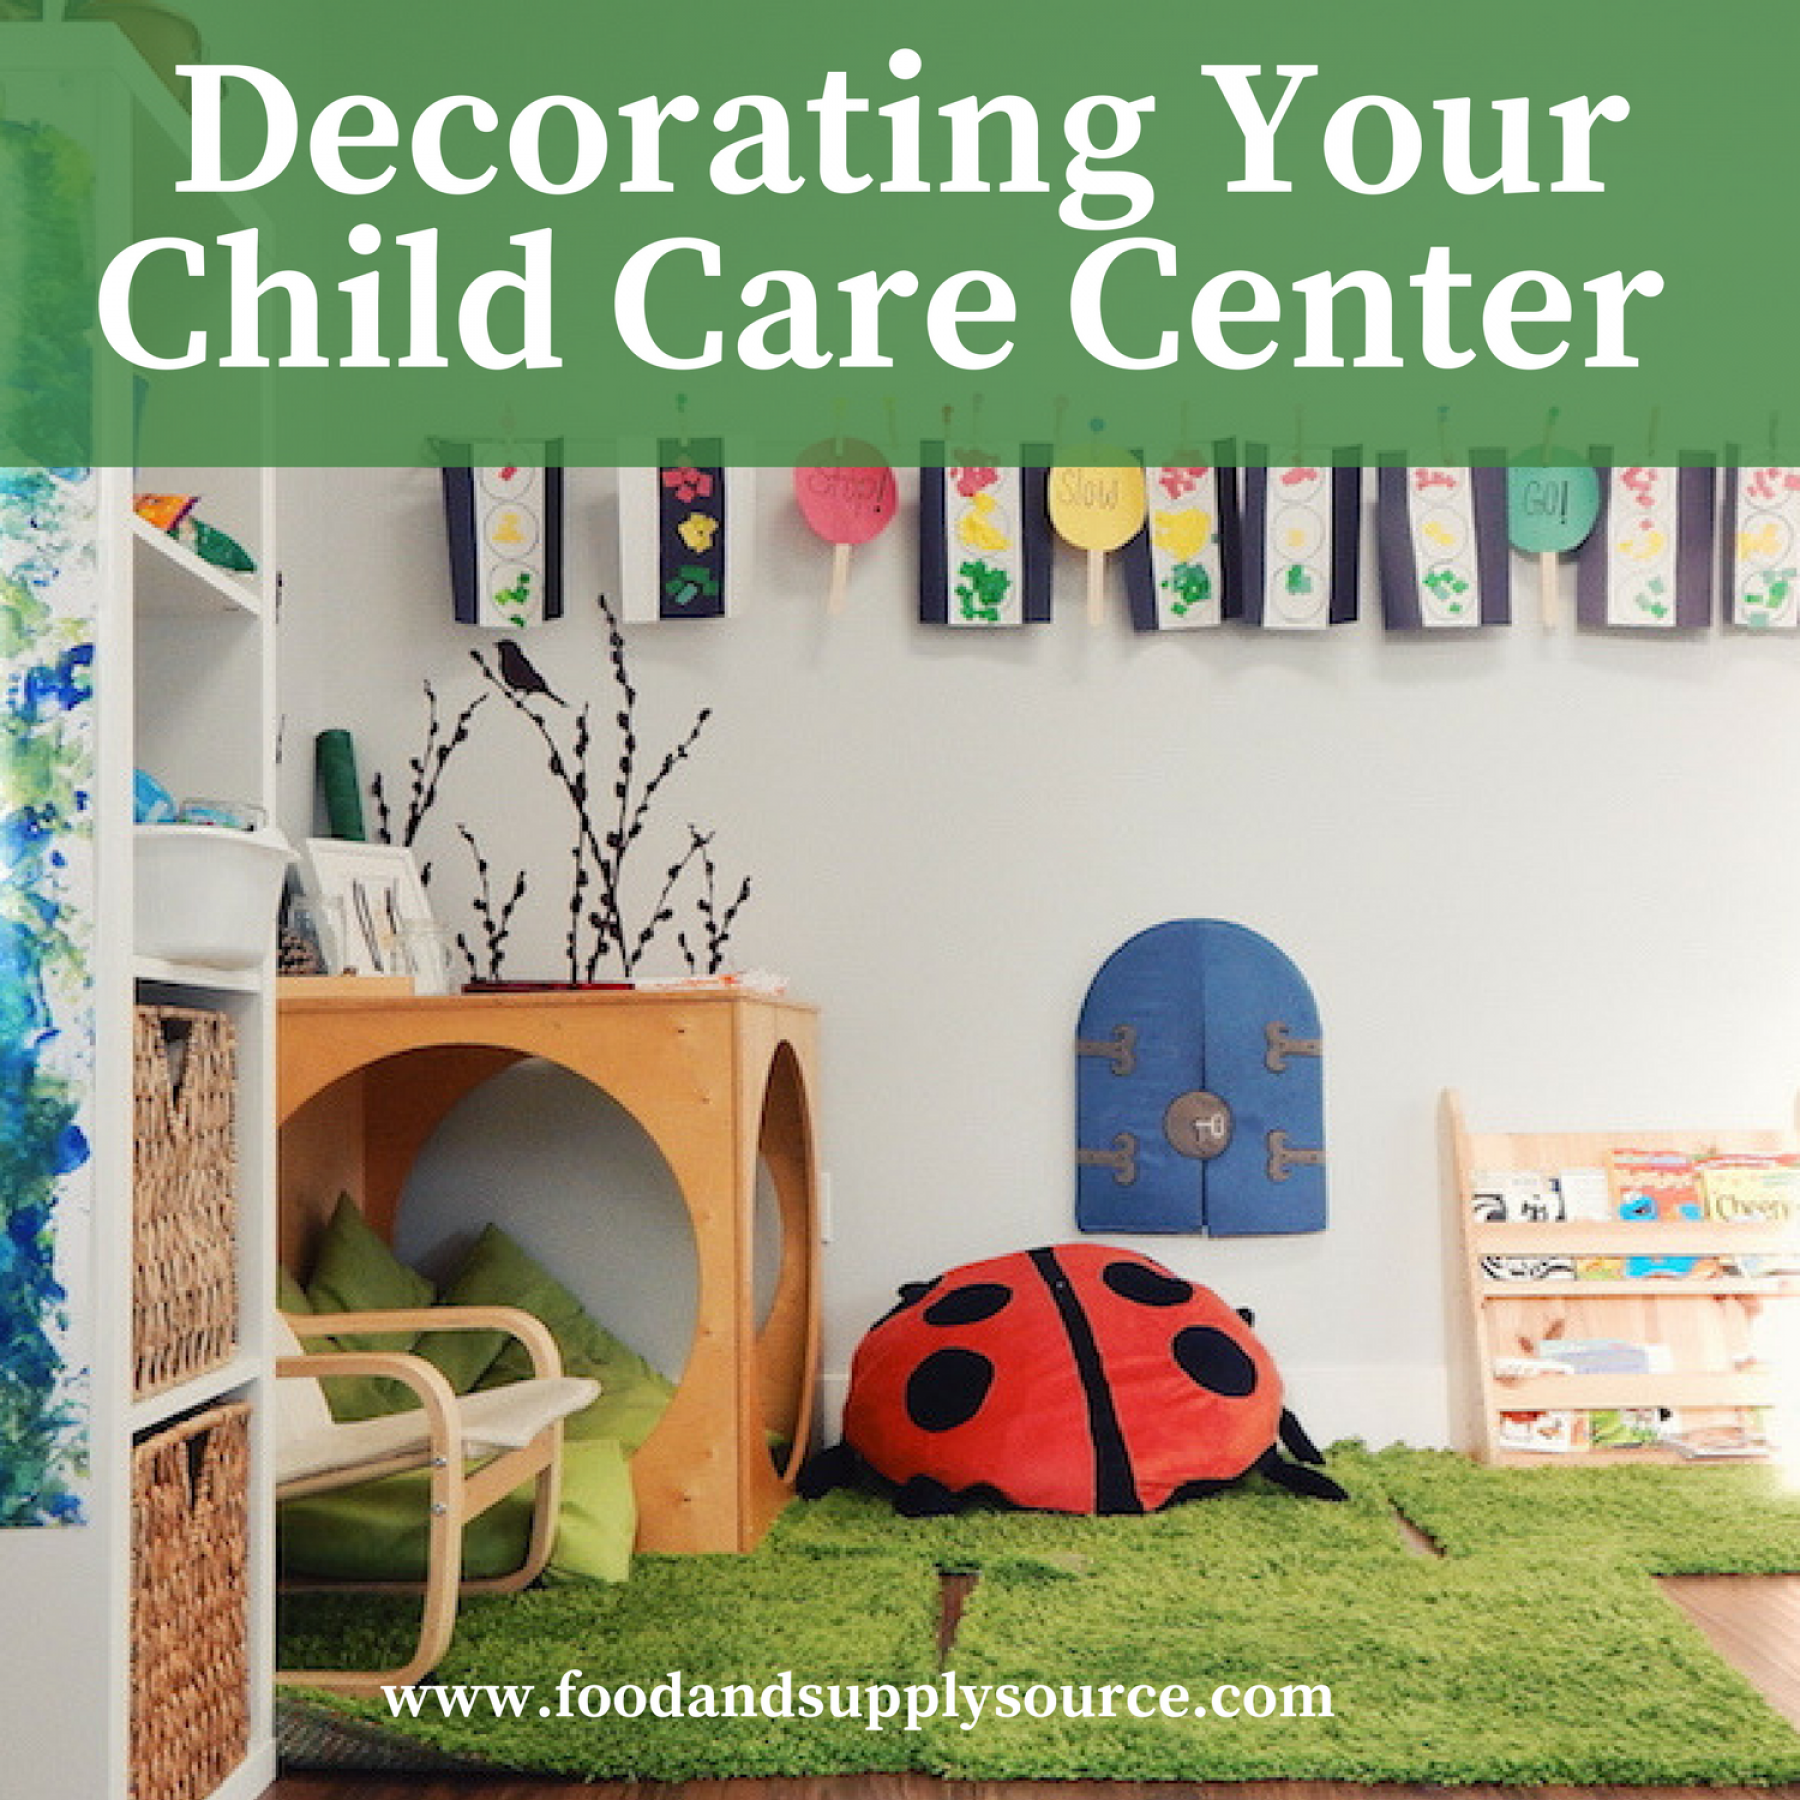 How to Decorate Your Child Care Center